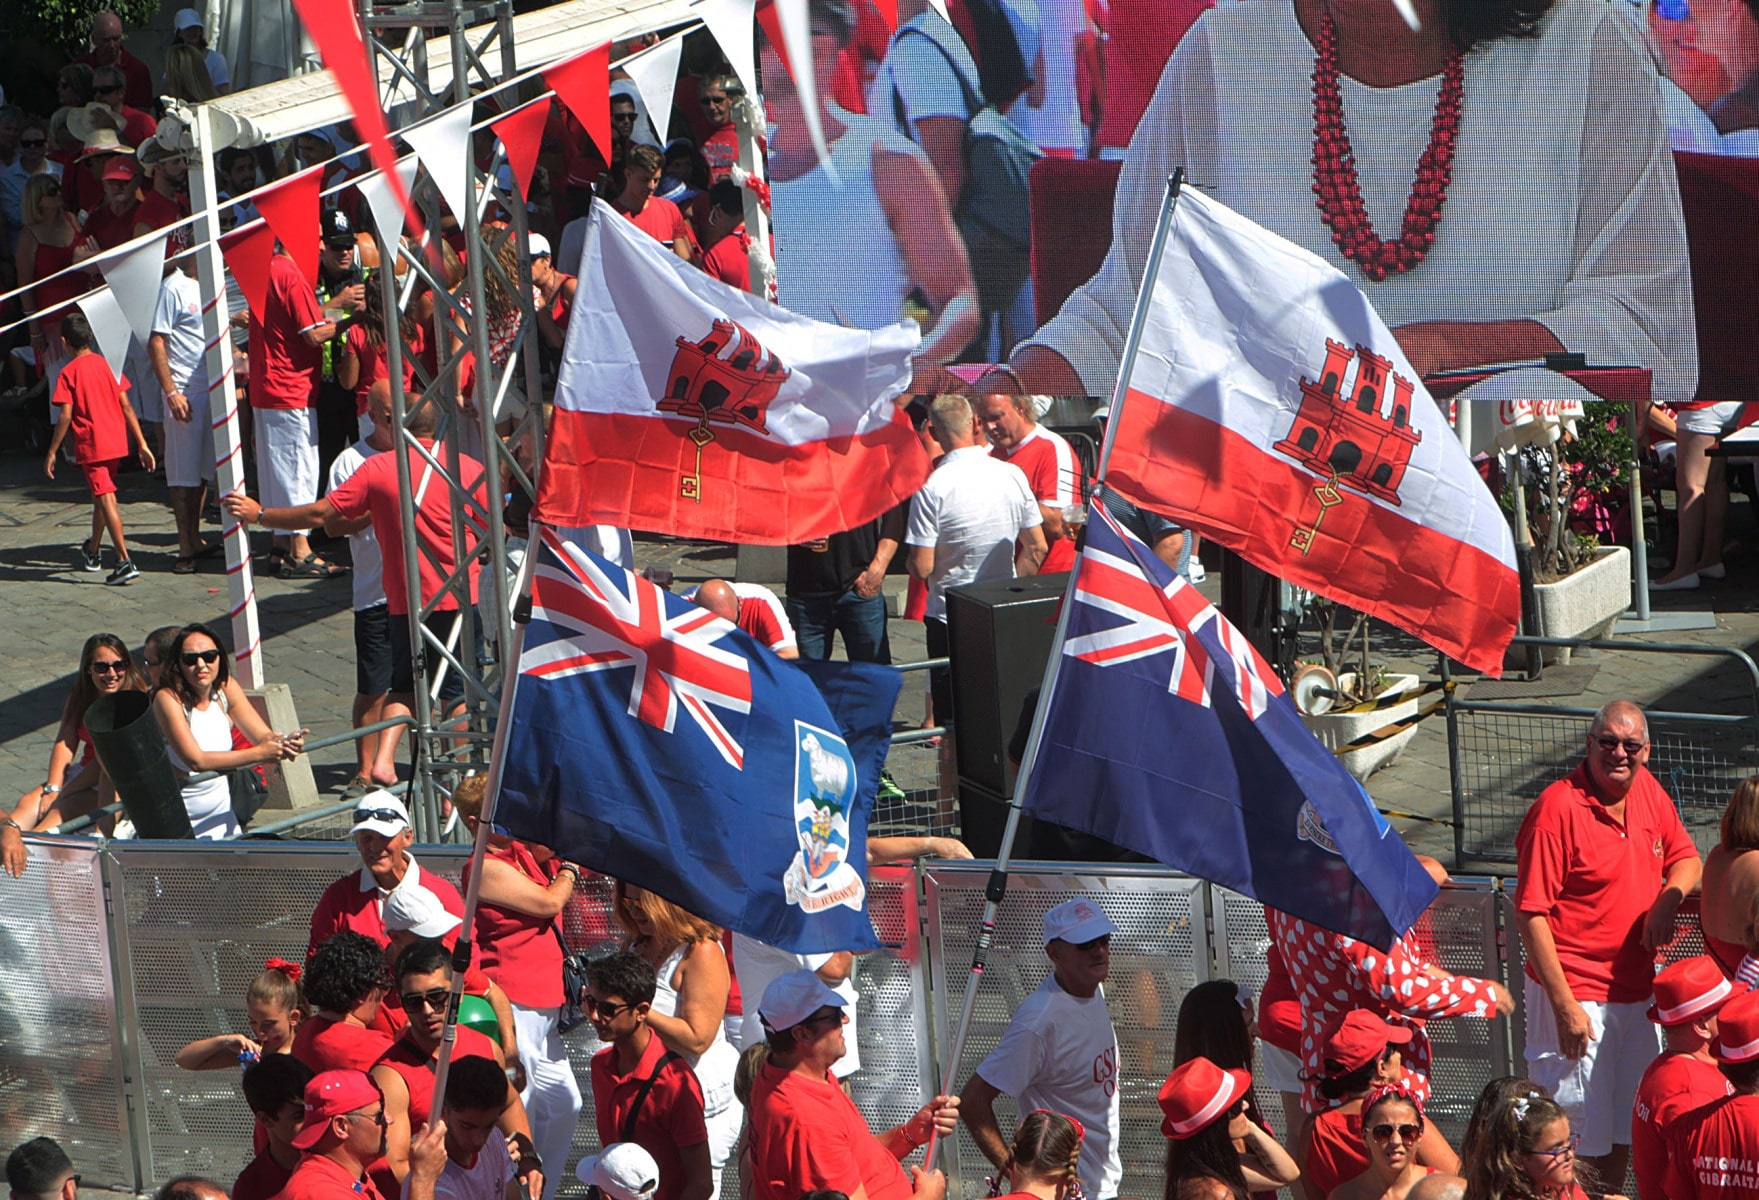 160910-national-day-gibraltar-2016-123_29524268221_o